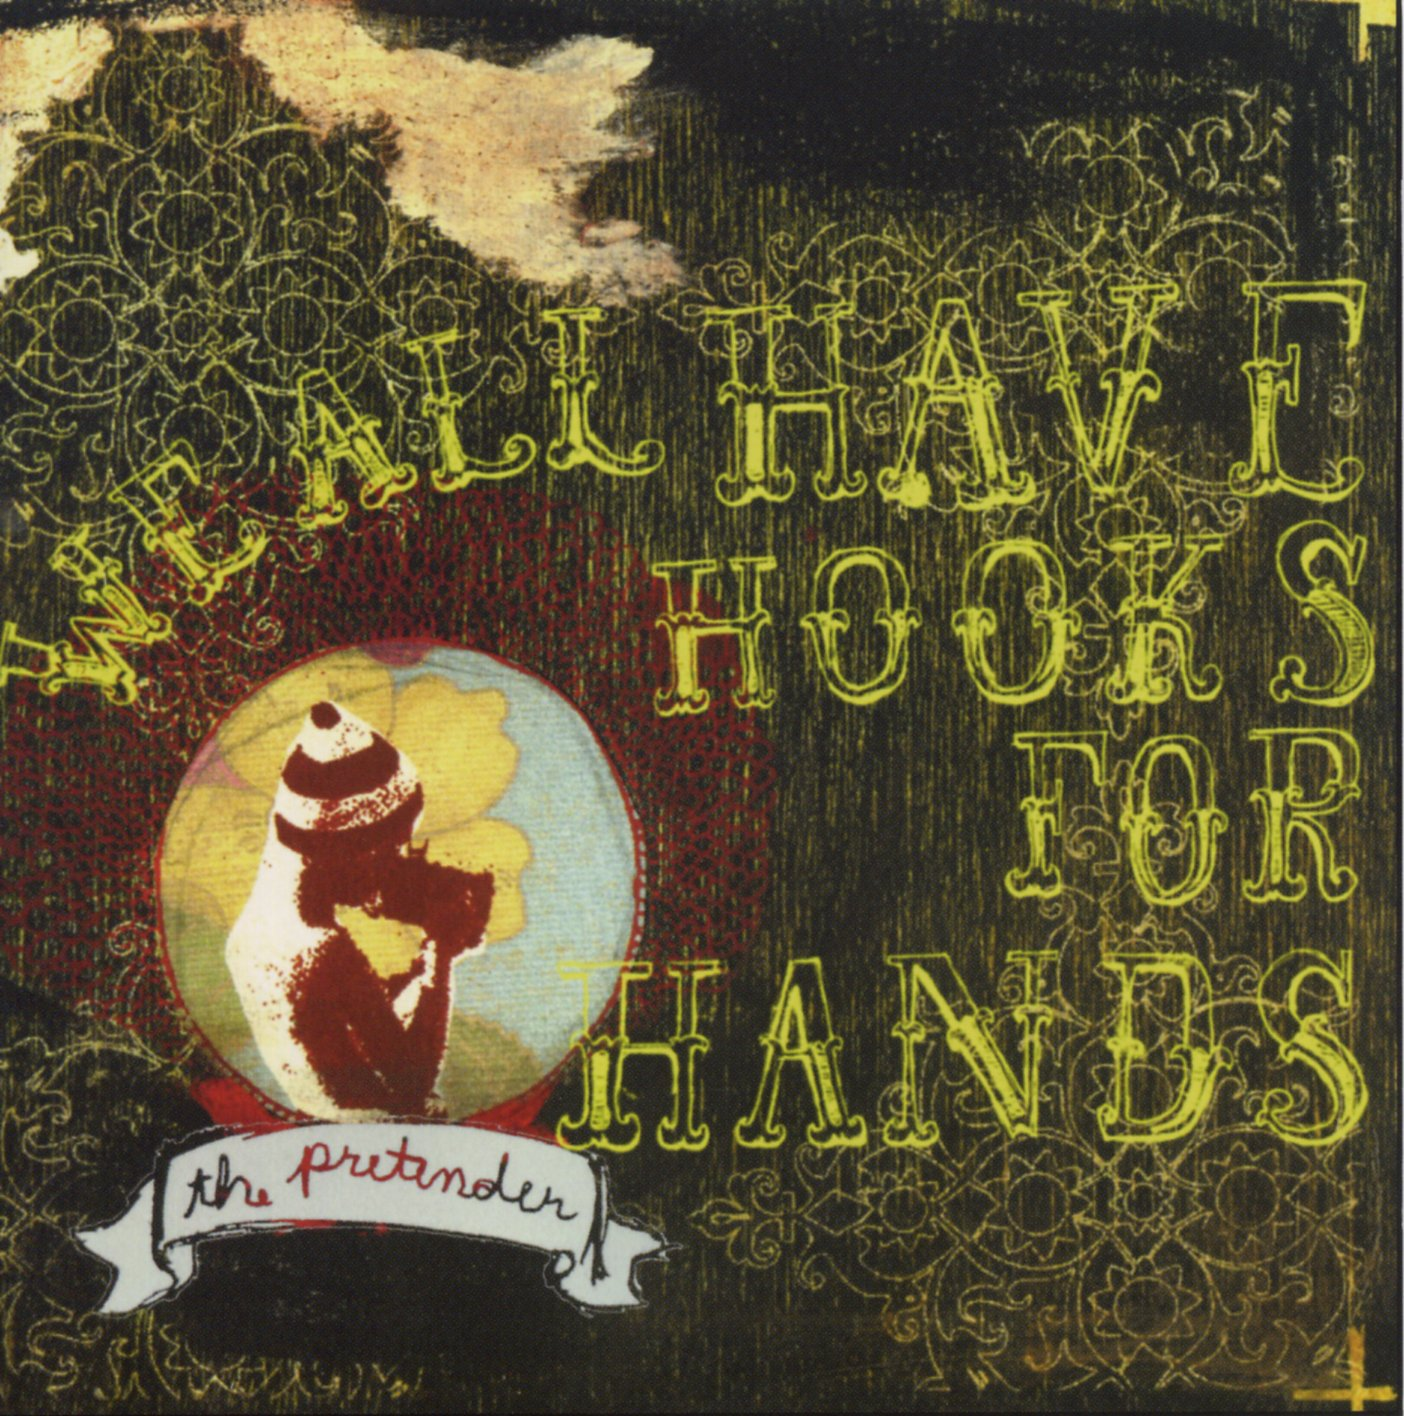 We All Have Hooks for Hands - The Pretender (CD)